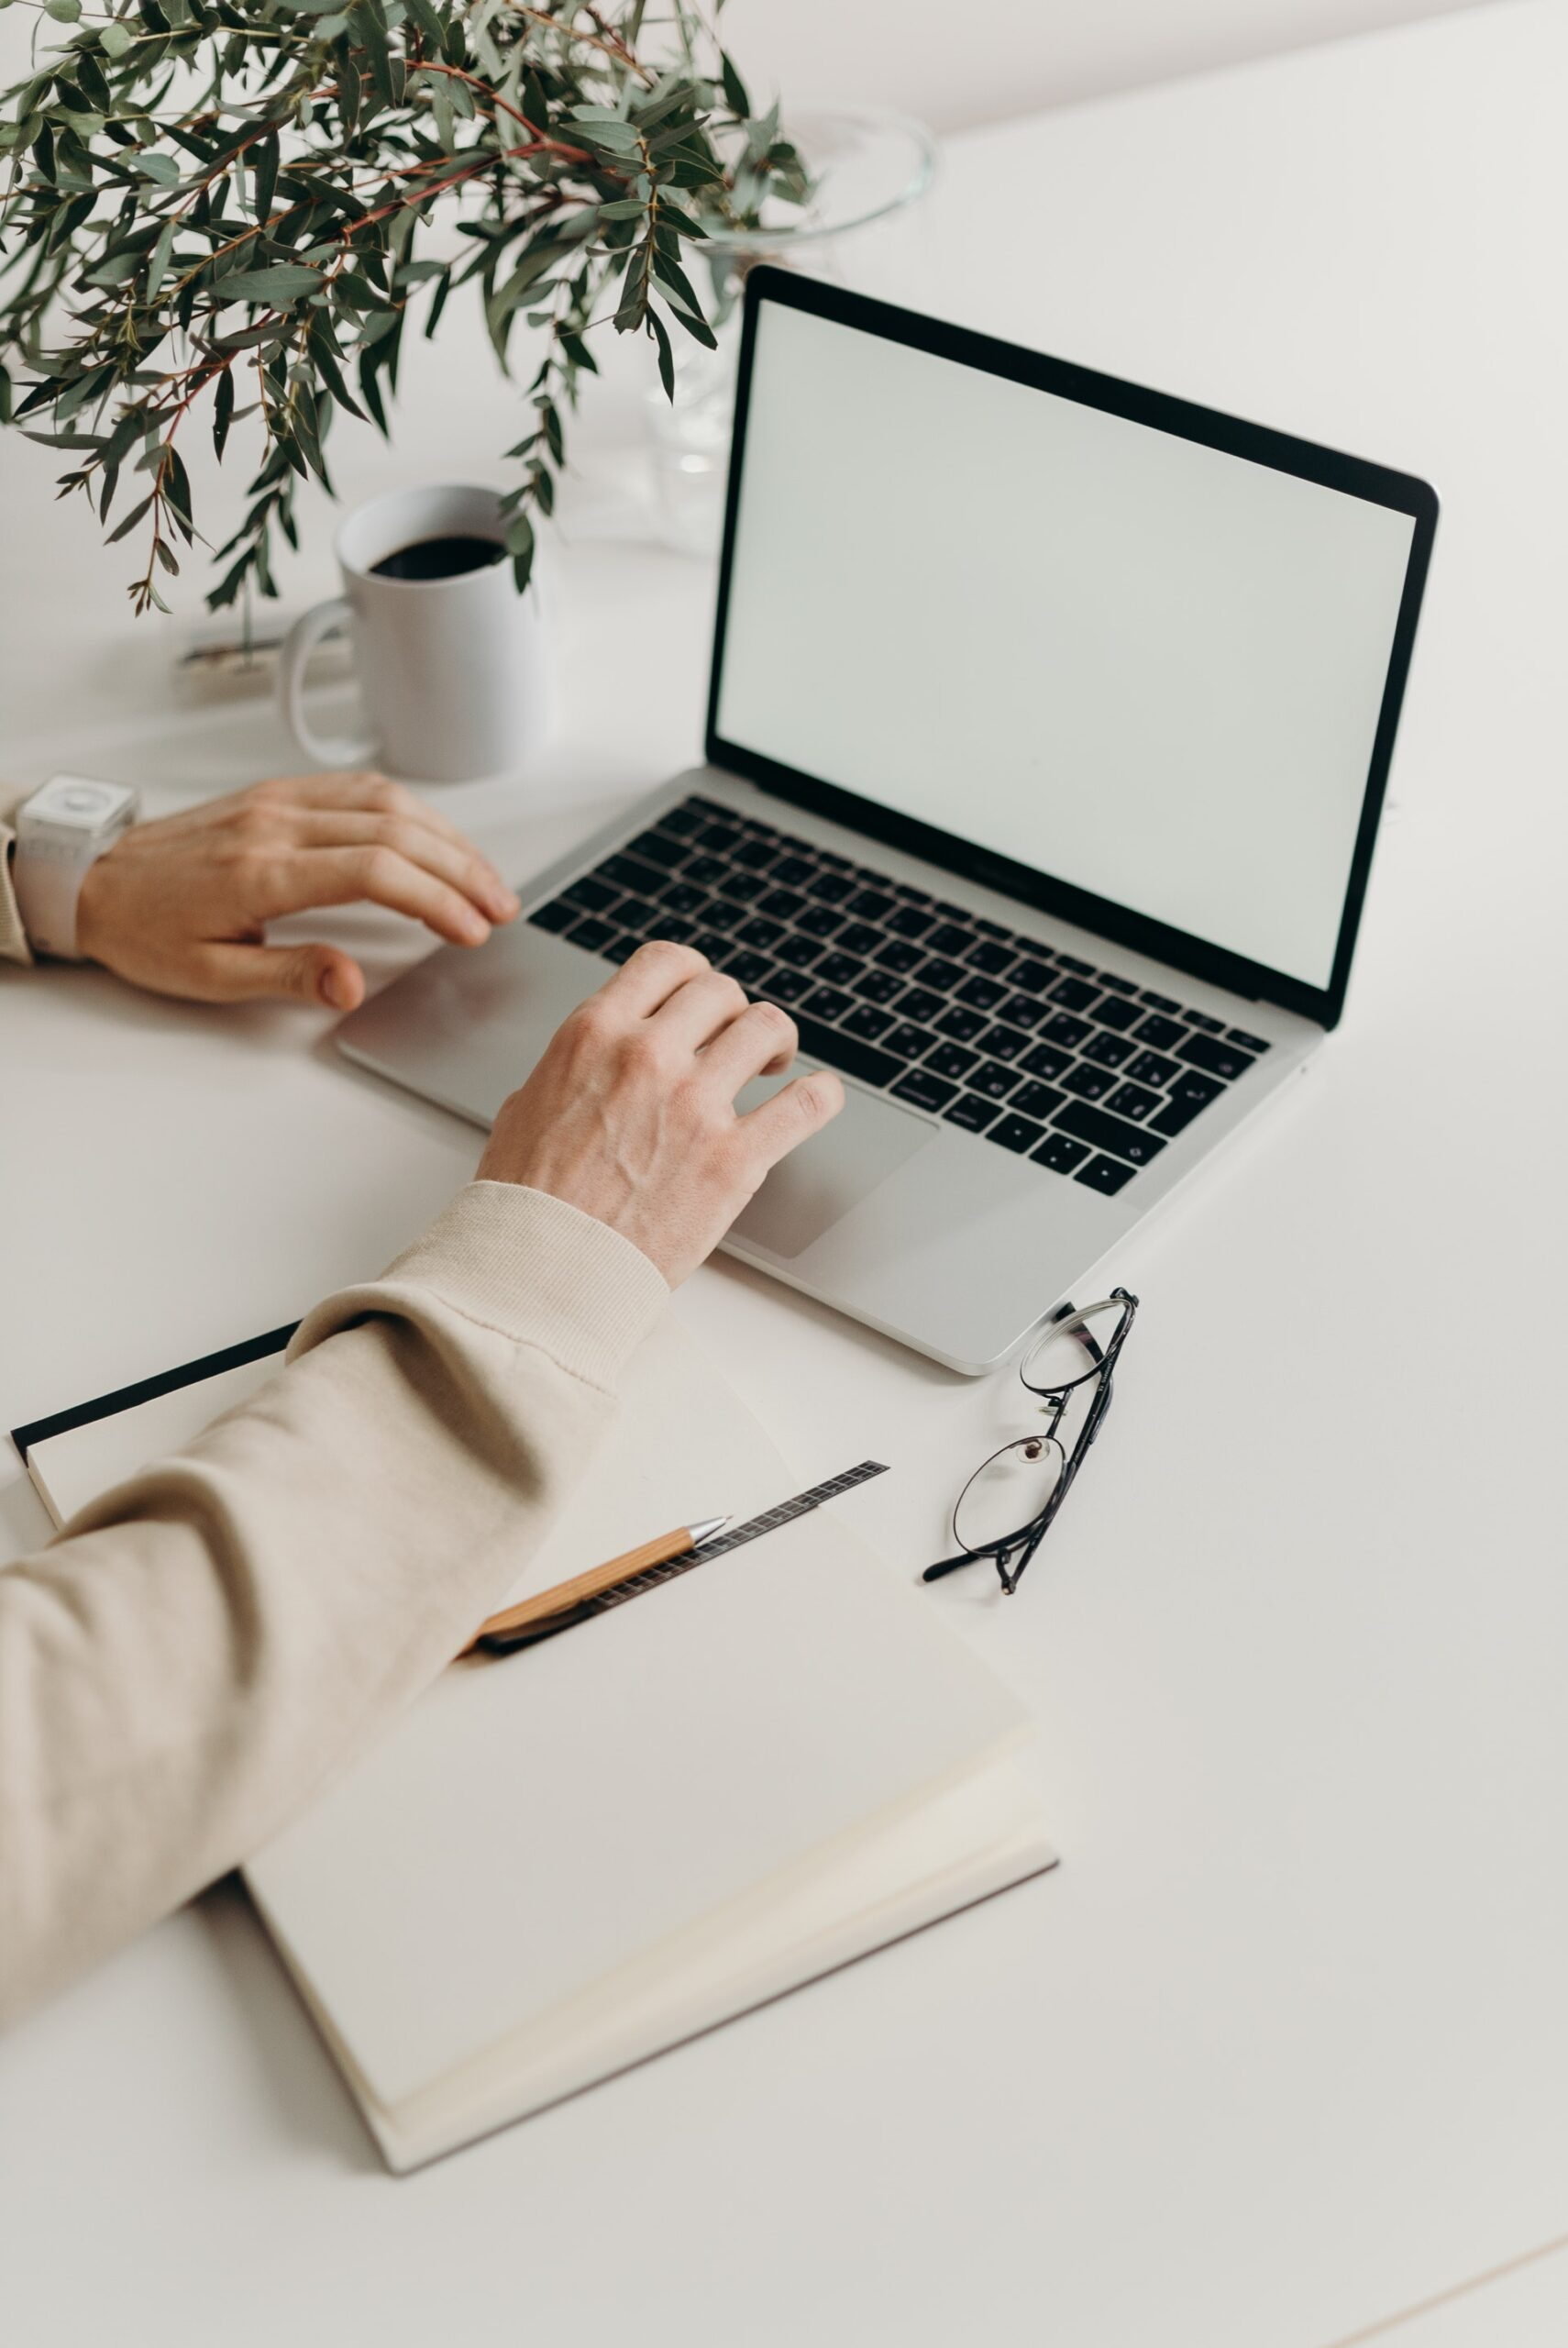 7 Useful Tips for Working Online as a Transcriber